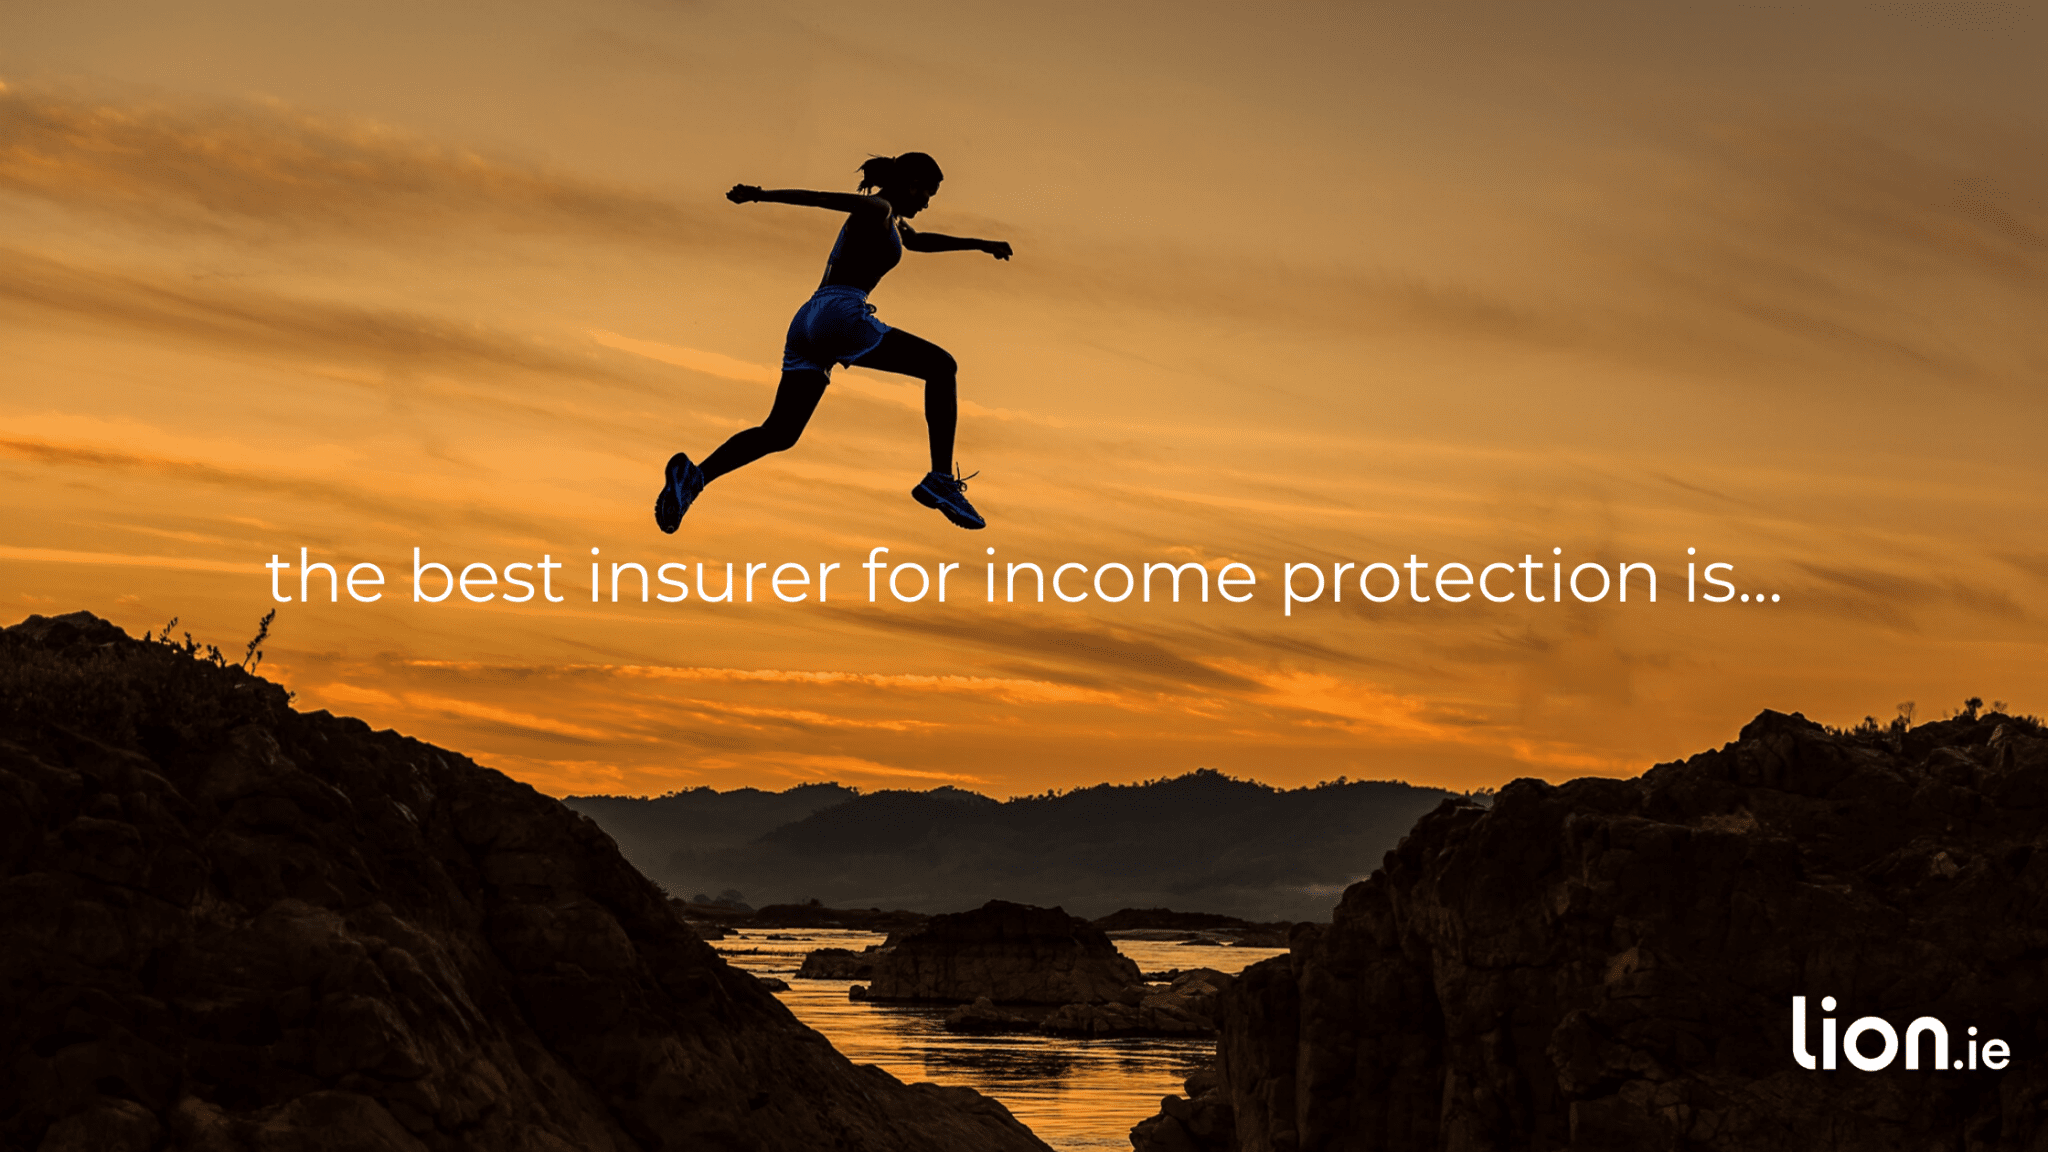 best insurer for income protection